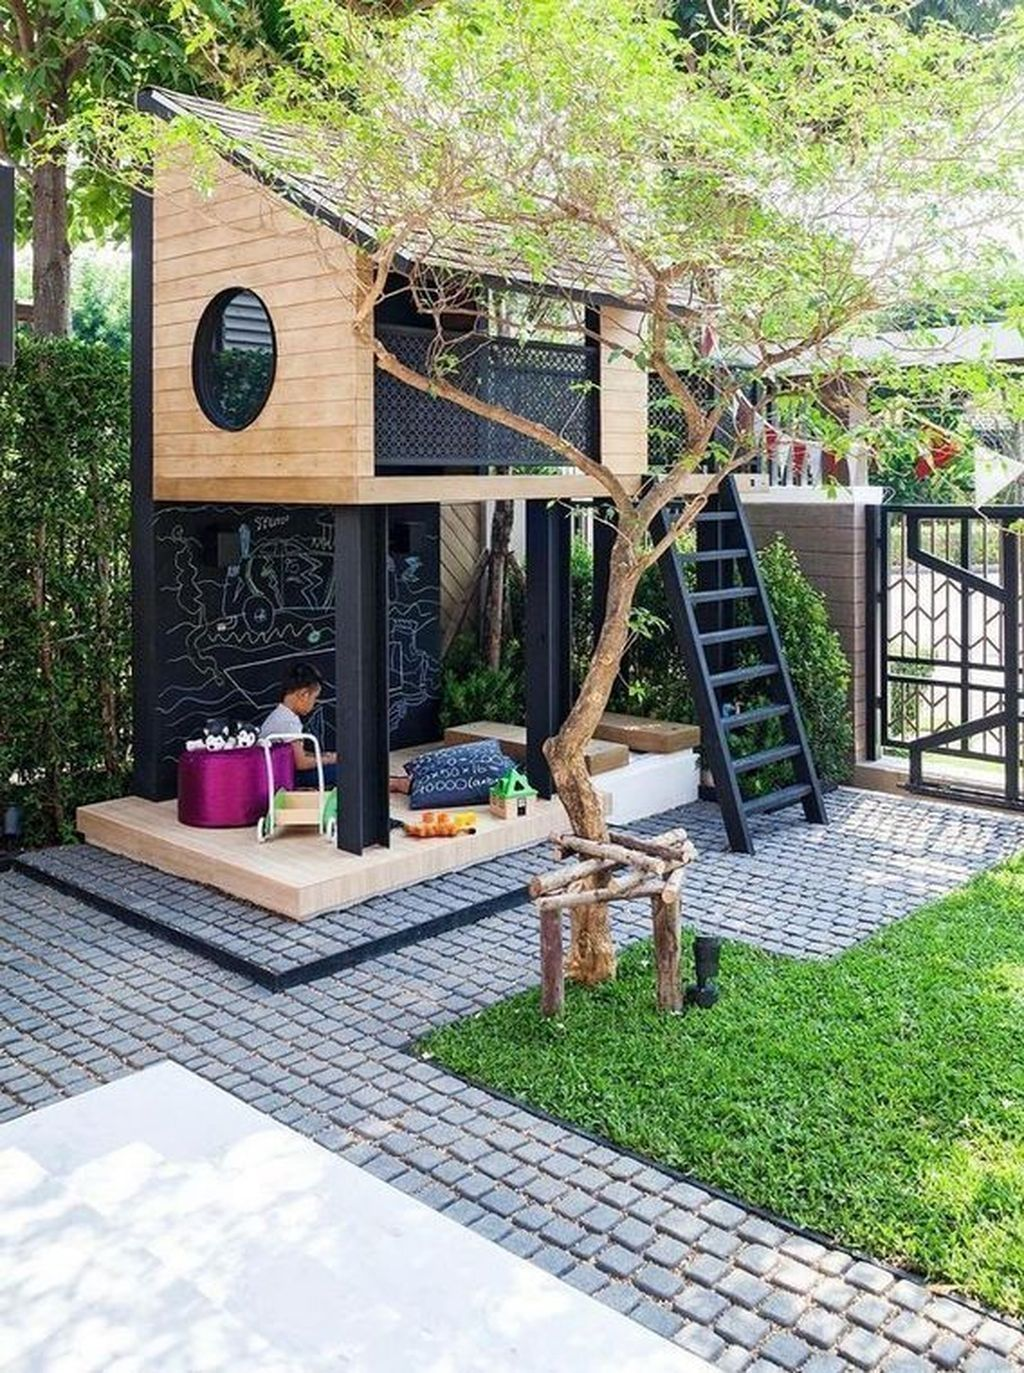 31 Captivating Backyard Patio Design Ideas With Play Kids You Have To Know - OMGHOMEDECOR